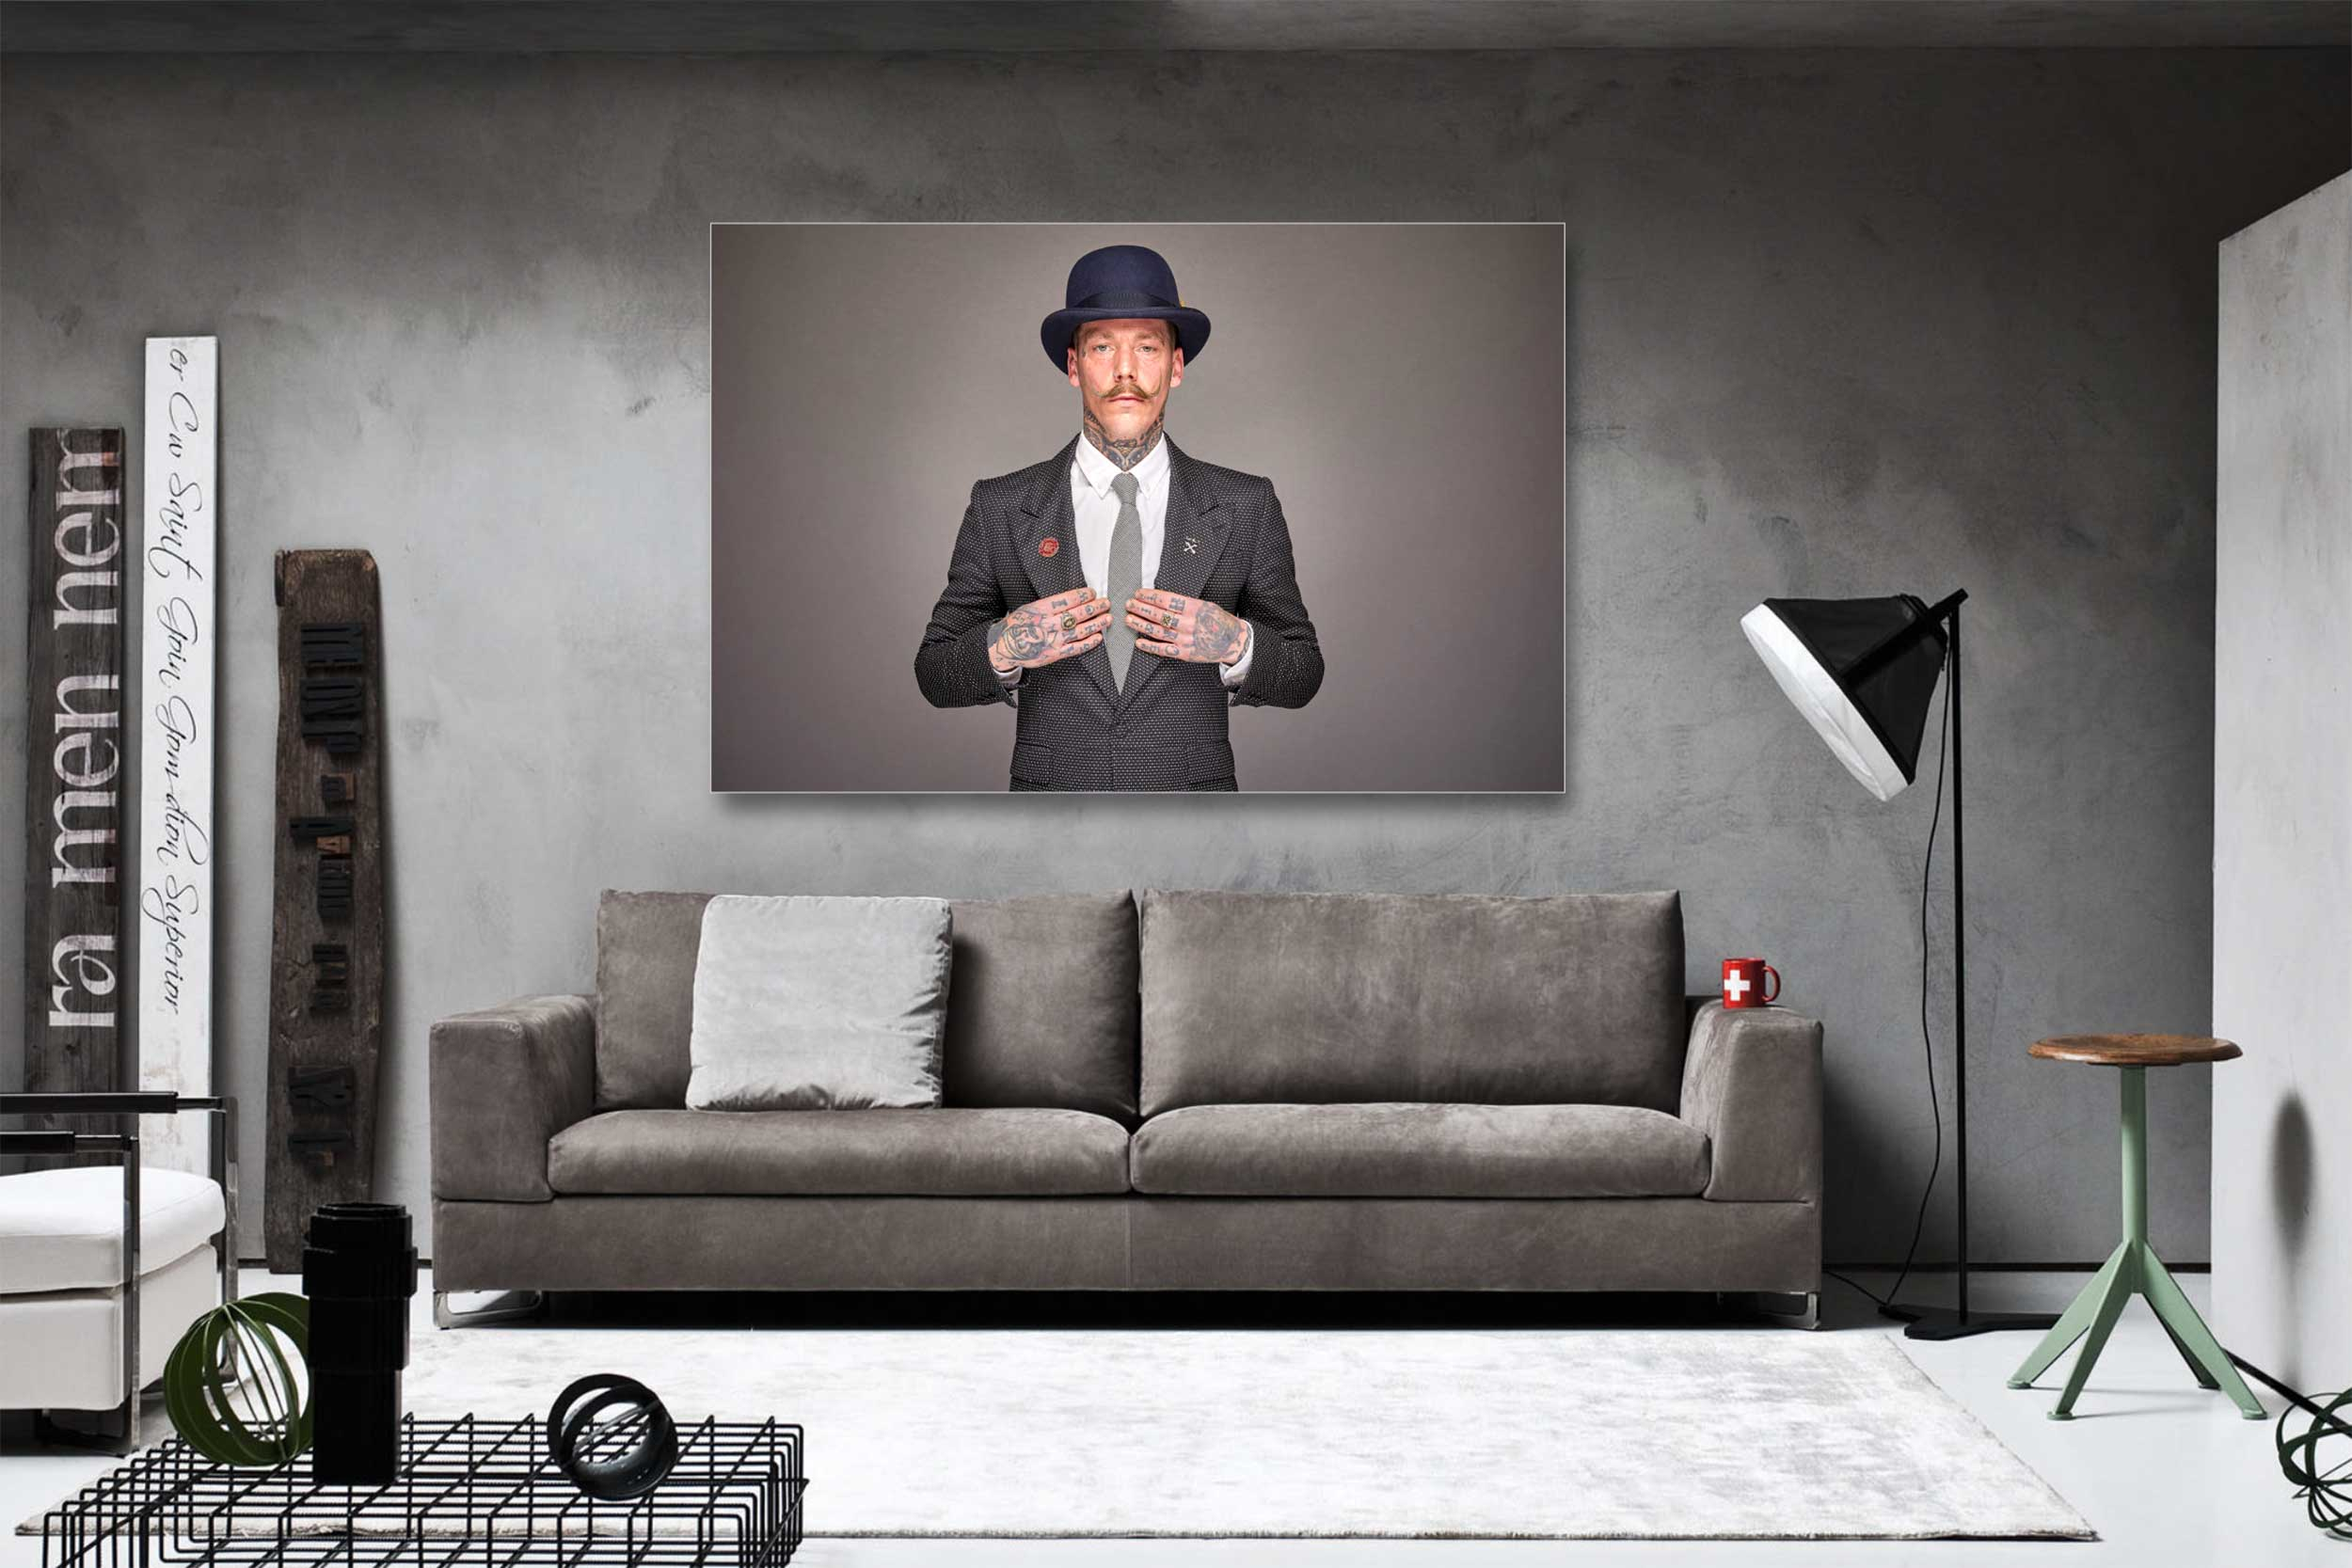 Wall Art Print On Aluminium Dibond Backing - Top quality photo papers Created with an aluminium Dibond backingSize 90x60cmWorld wide shipping servicesMore info & order HERE